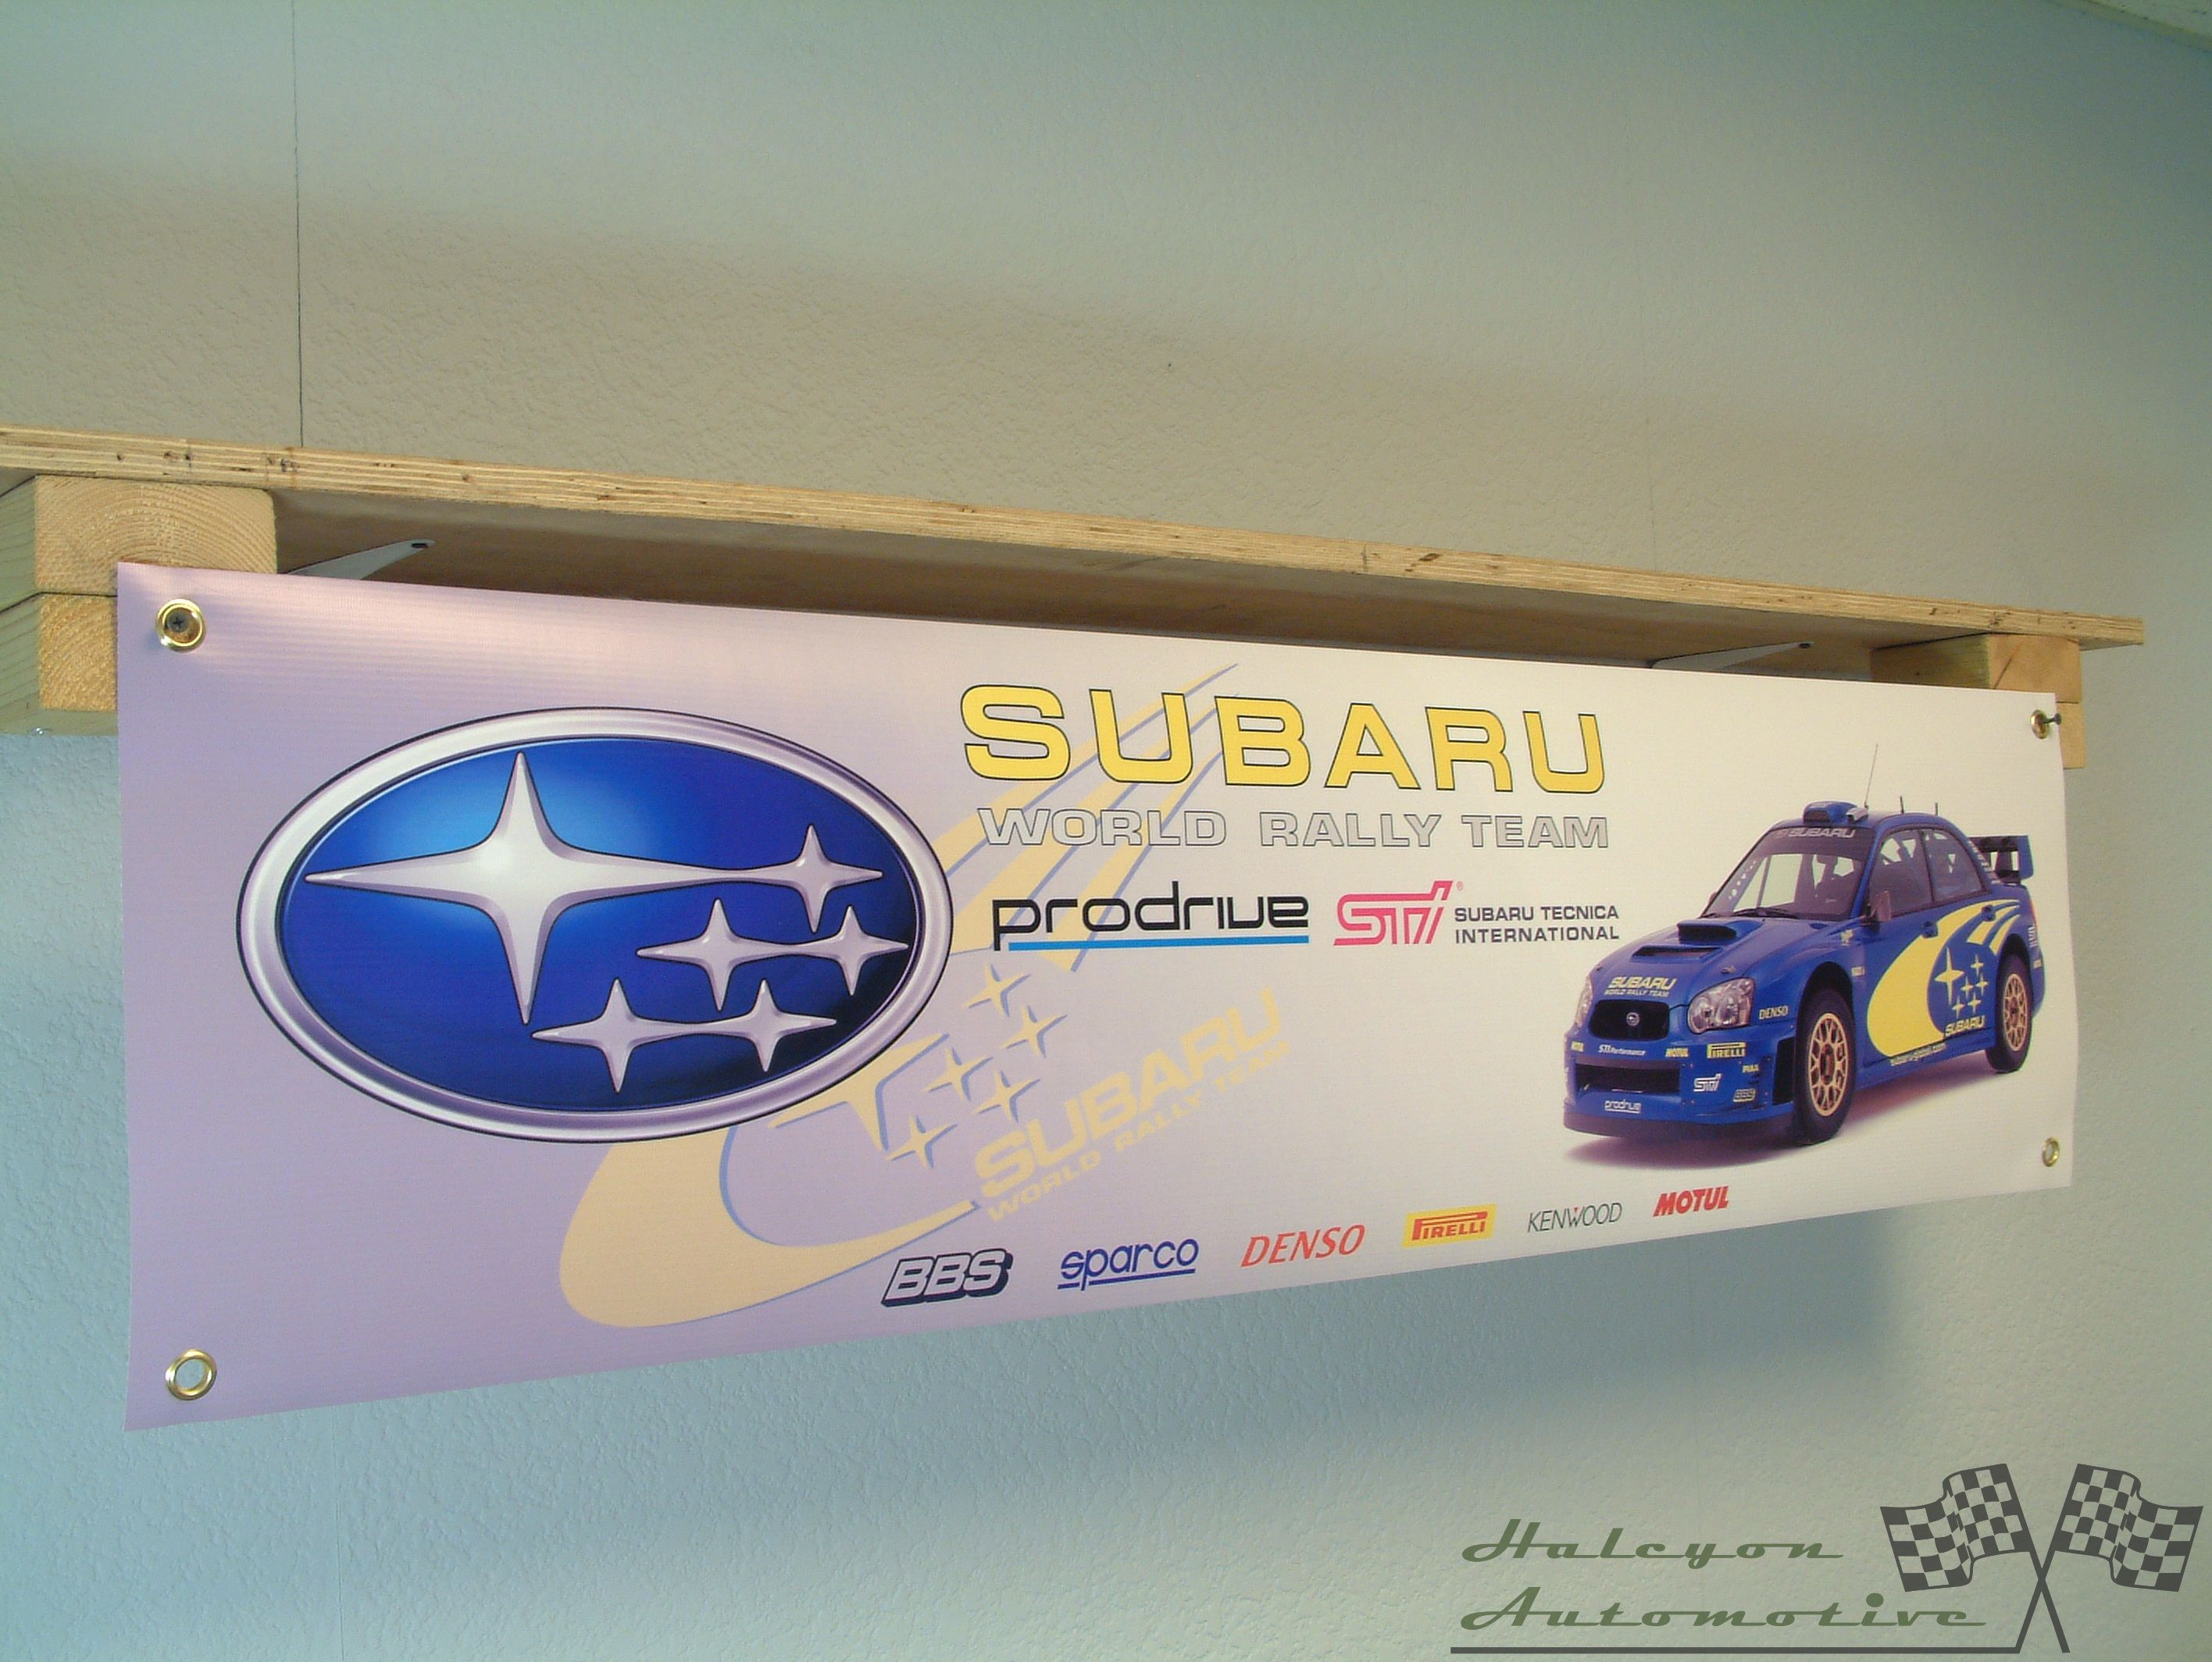 Subaru WRX Impreza Workshop Garage Car Display Banner